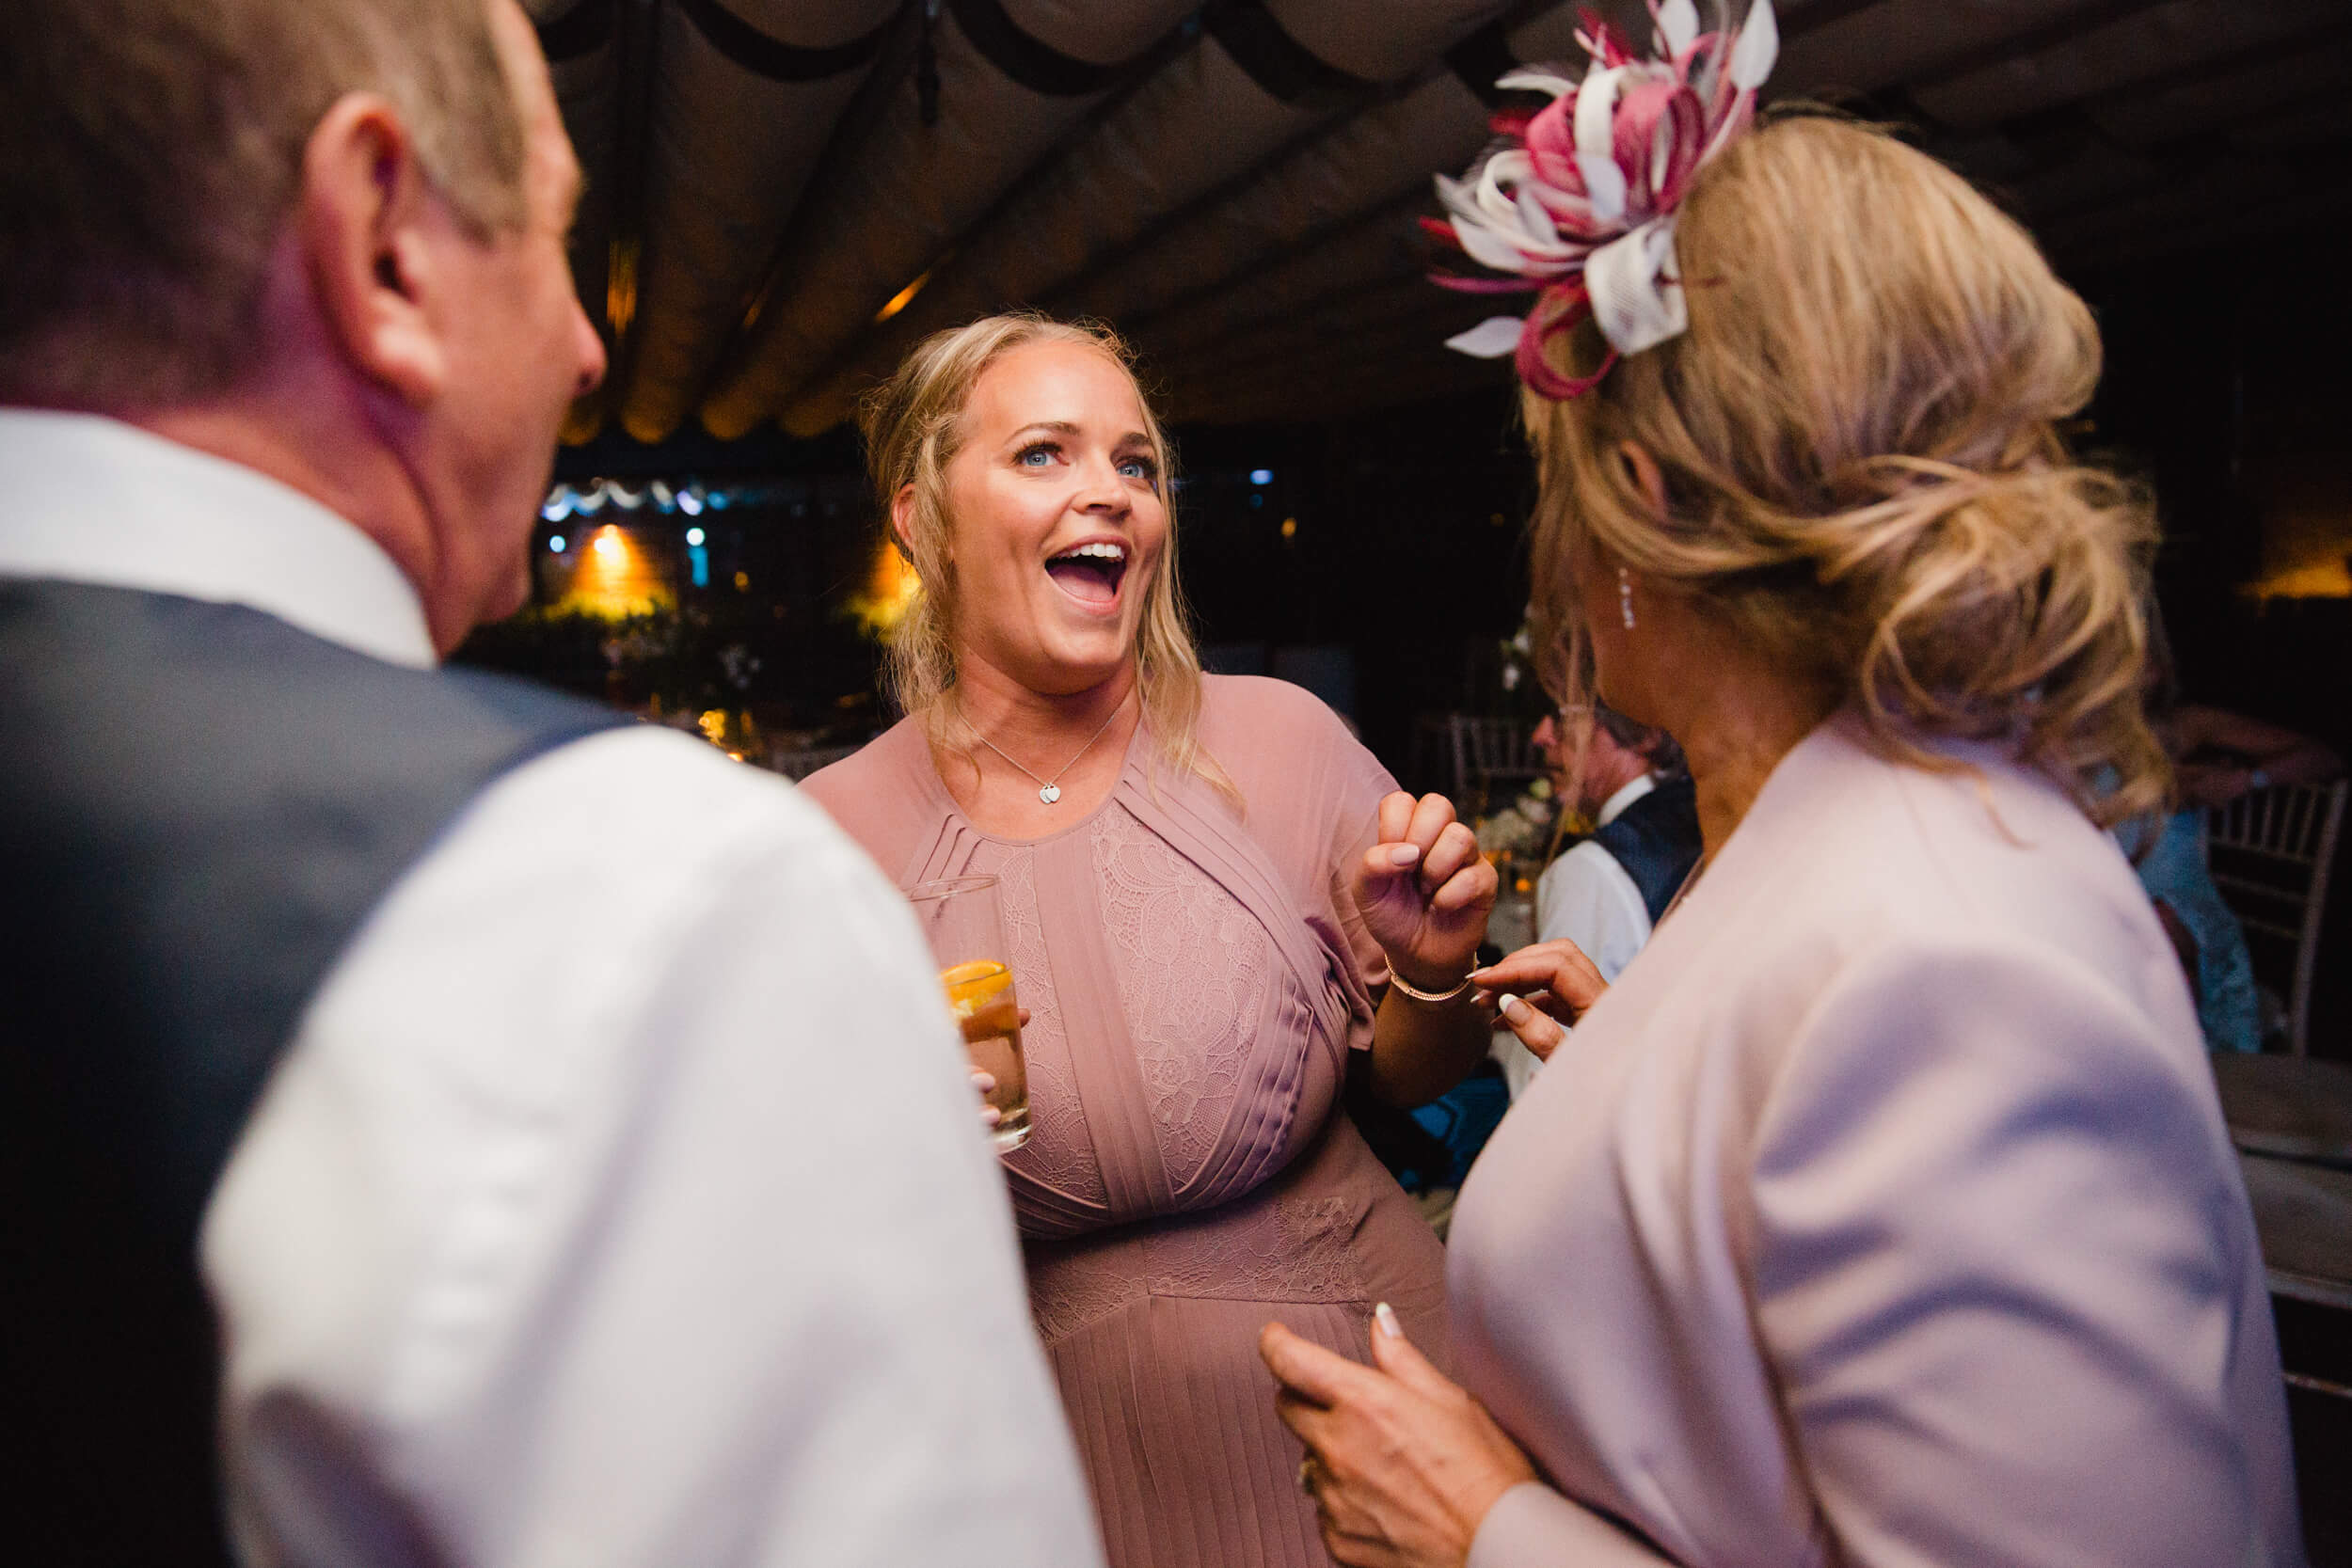 maid of honour sharing joke with bridal party after ceremony